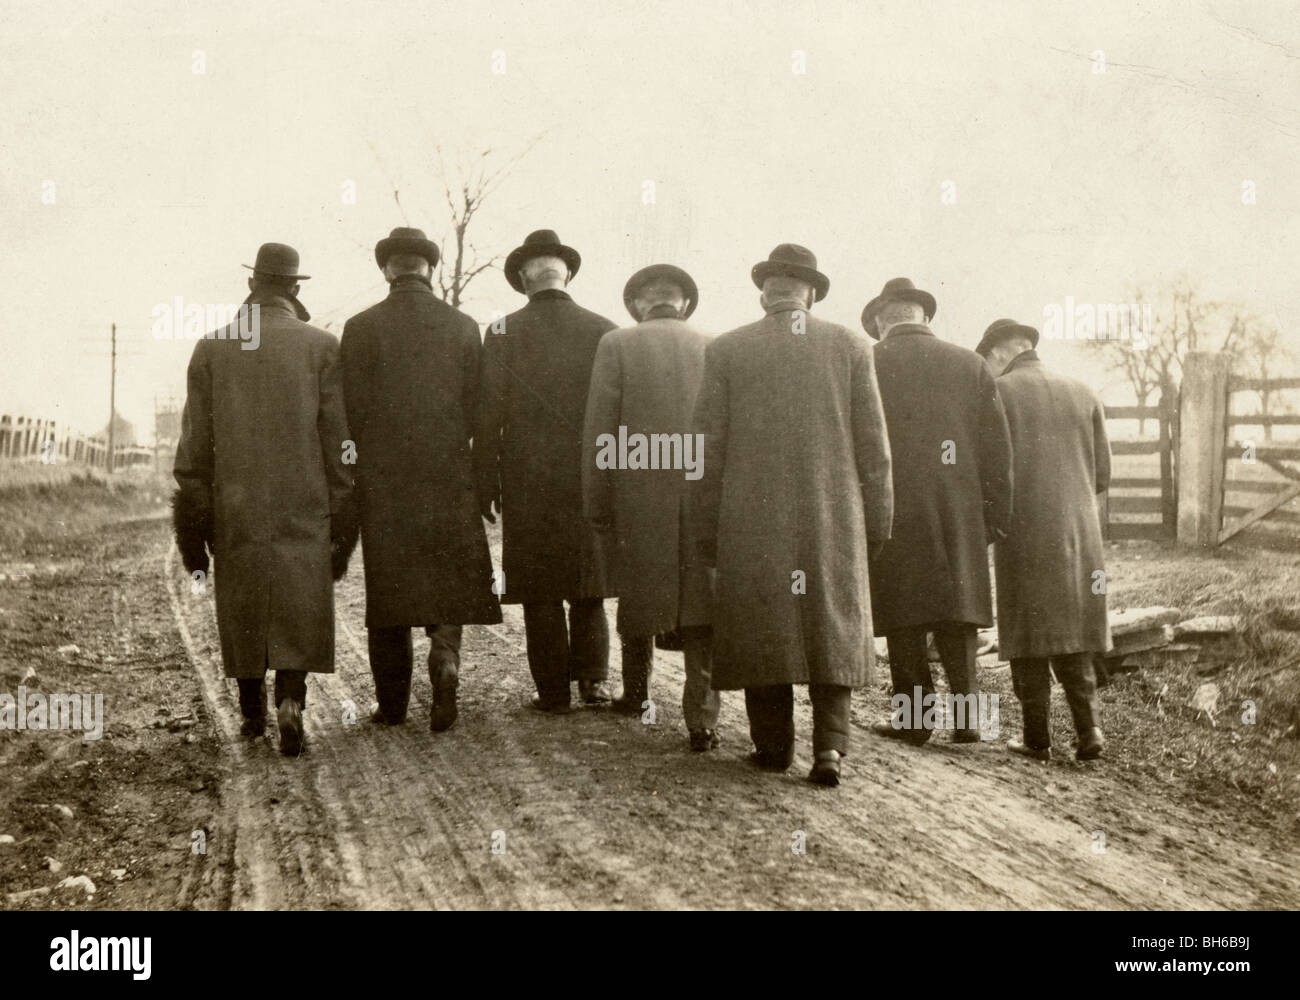 Seven Dispirited Men Trudging Along Country Road - Stock Image